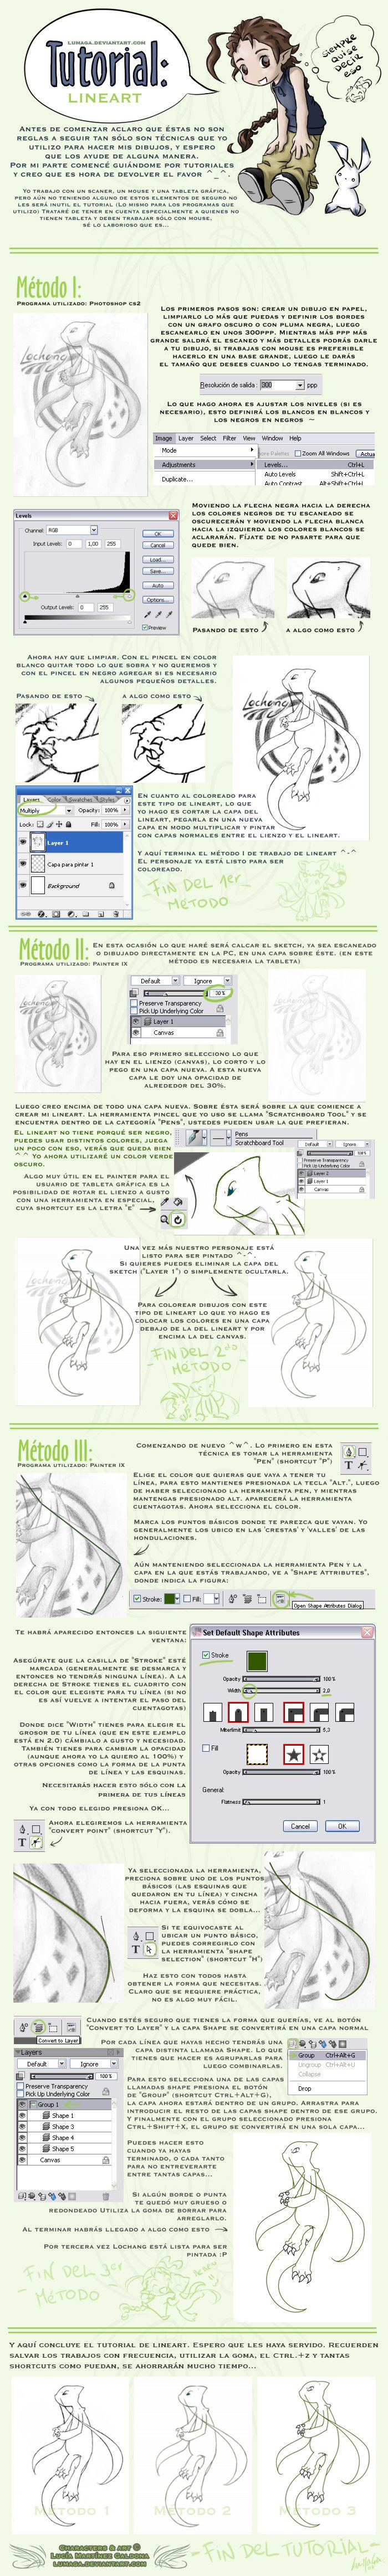 Tutorial: Lineart por LuMaGa by noticias